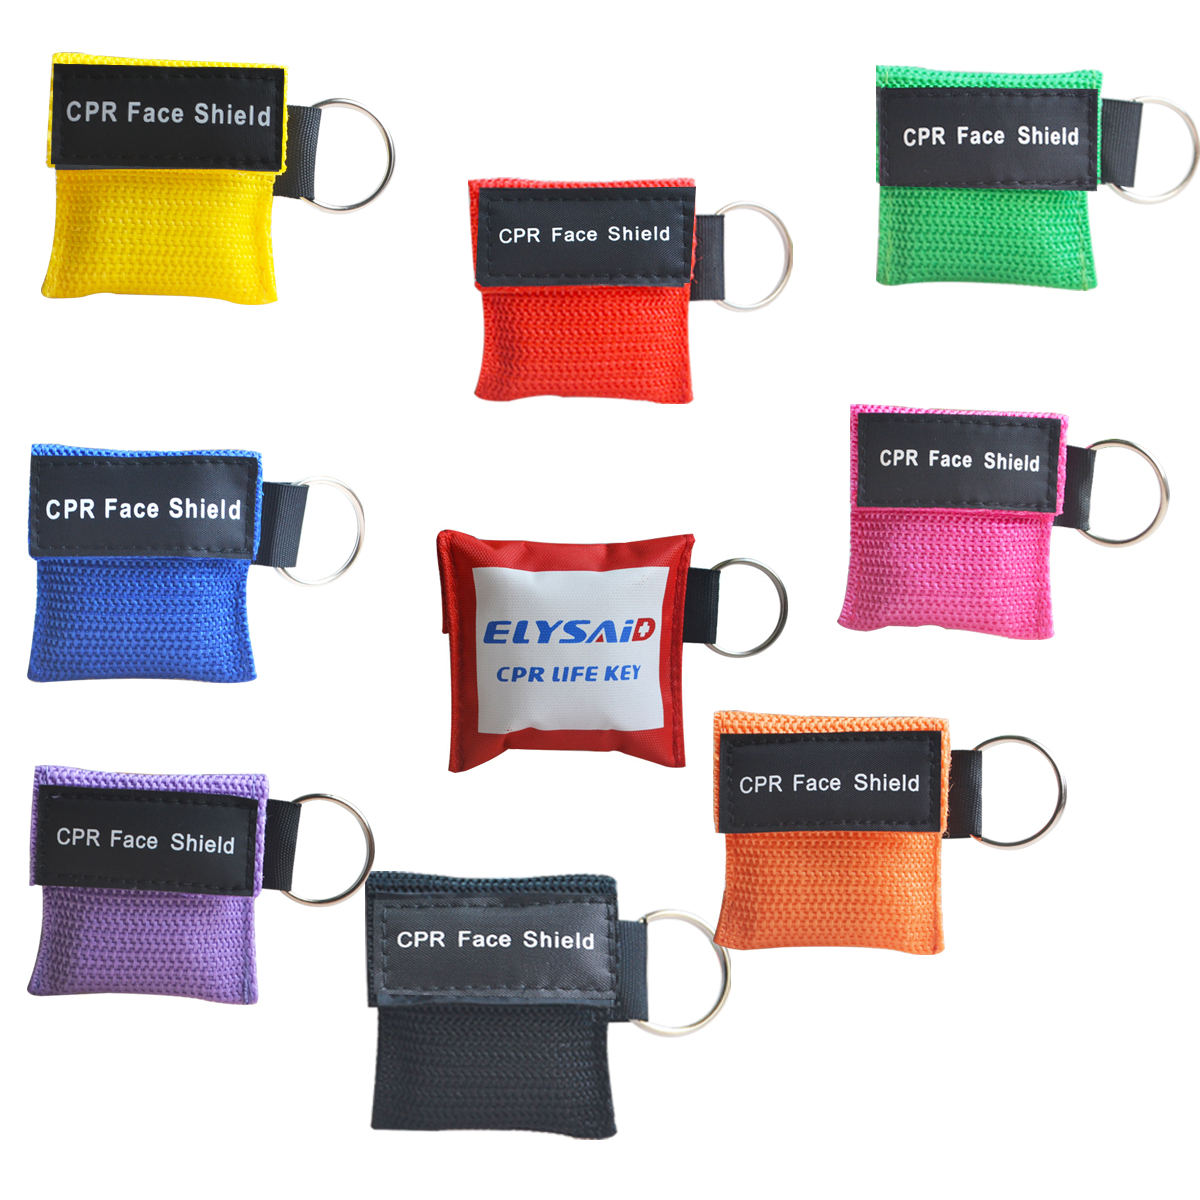 100Pcs Lot Optional Color CPR Resuscitator Mask Keychain Emergency Face Shield Mask With One way Valve